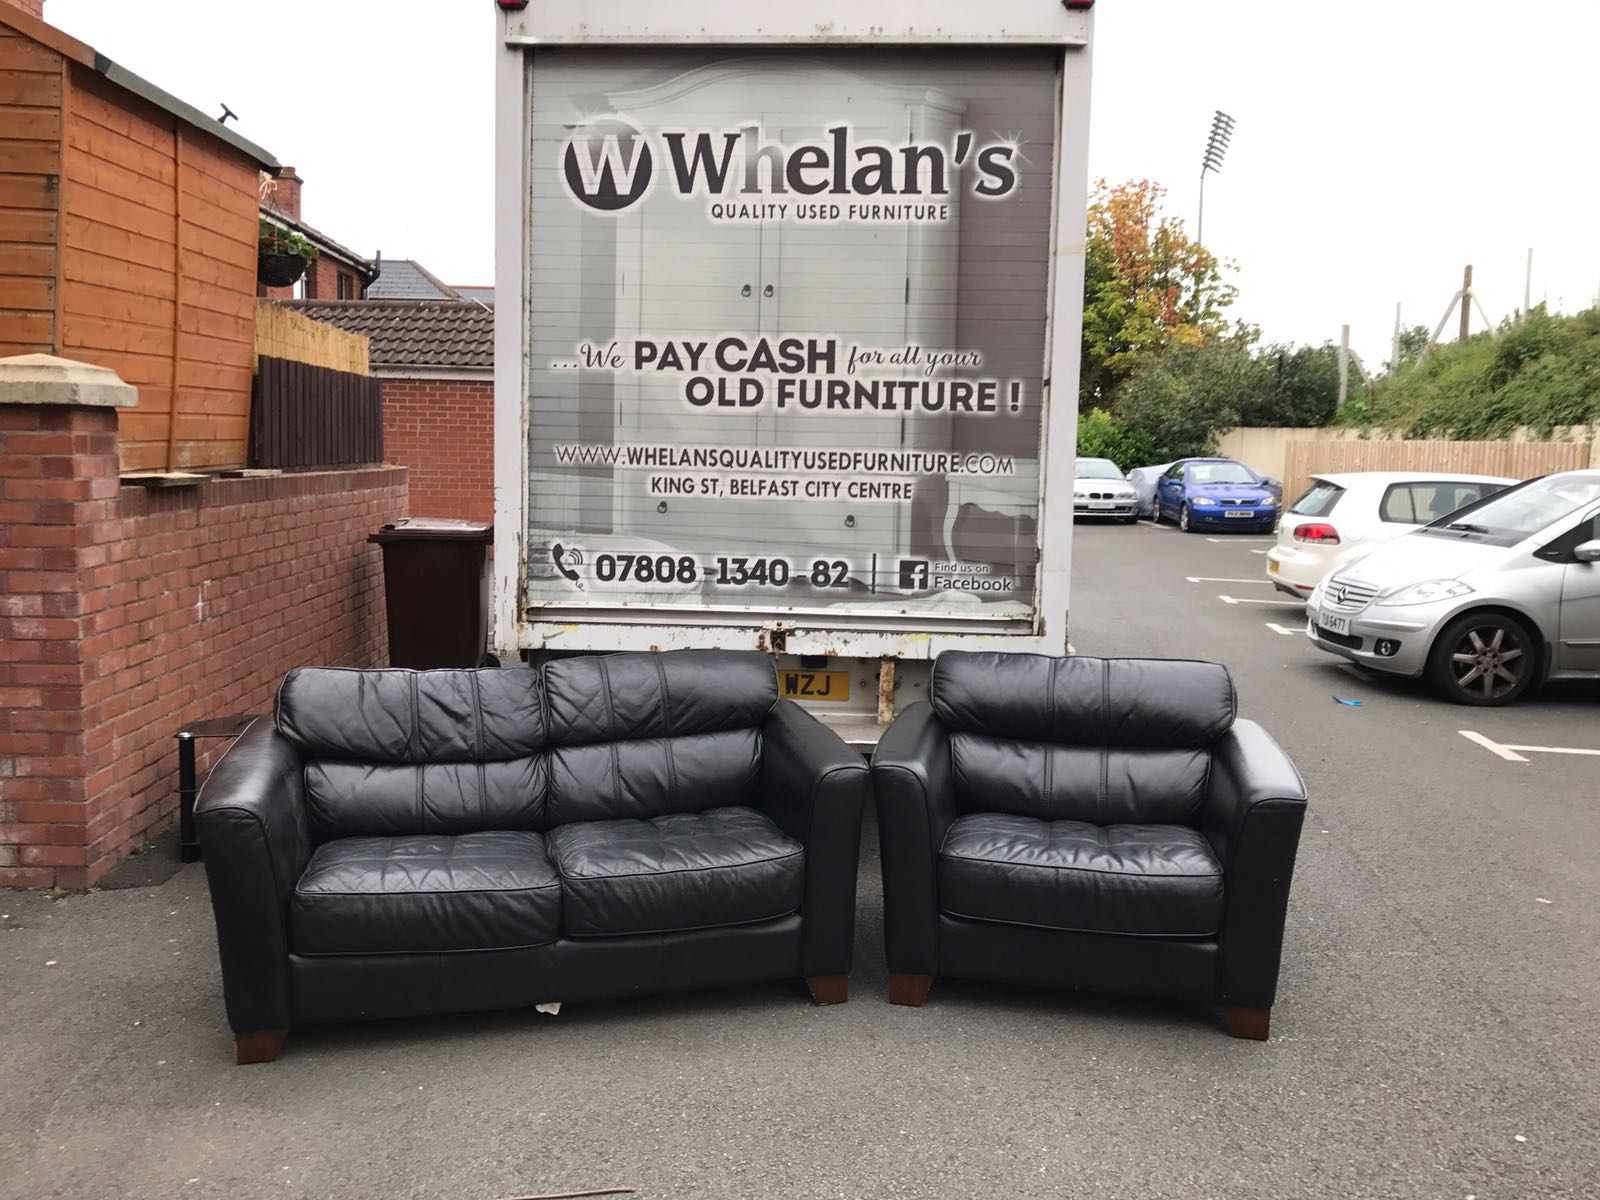 2 Seater Sofa And Armchair In Black Leather Whelans Quality Used Furniture